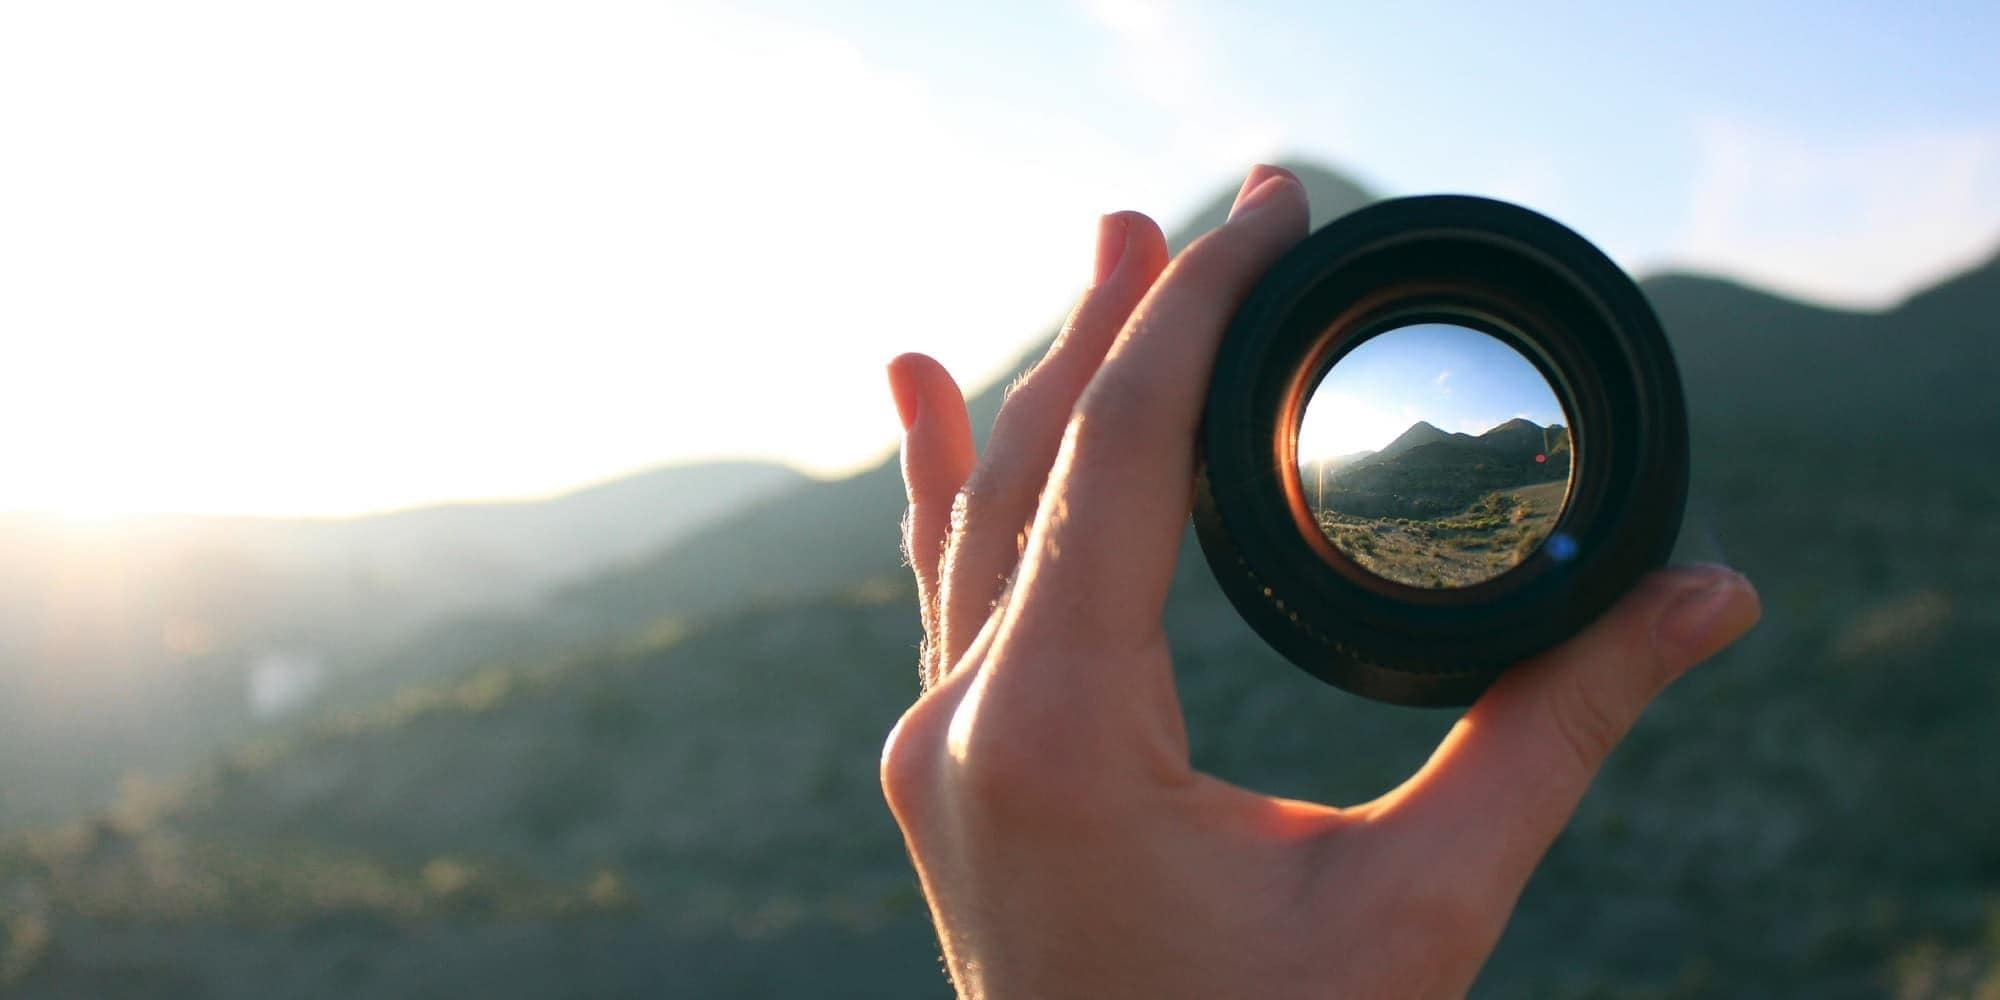 hand with lens focus